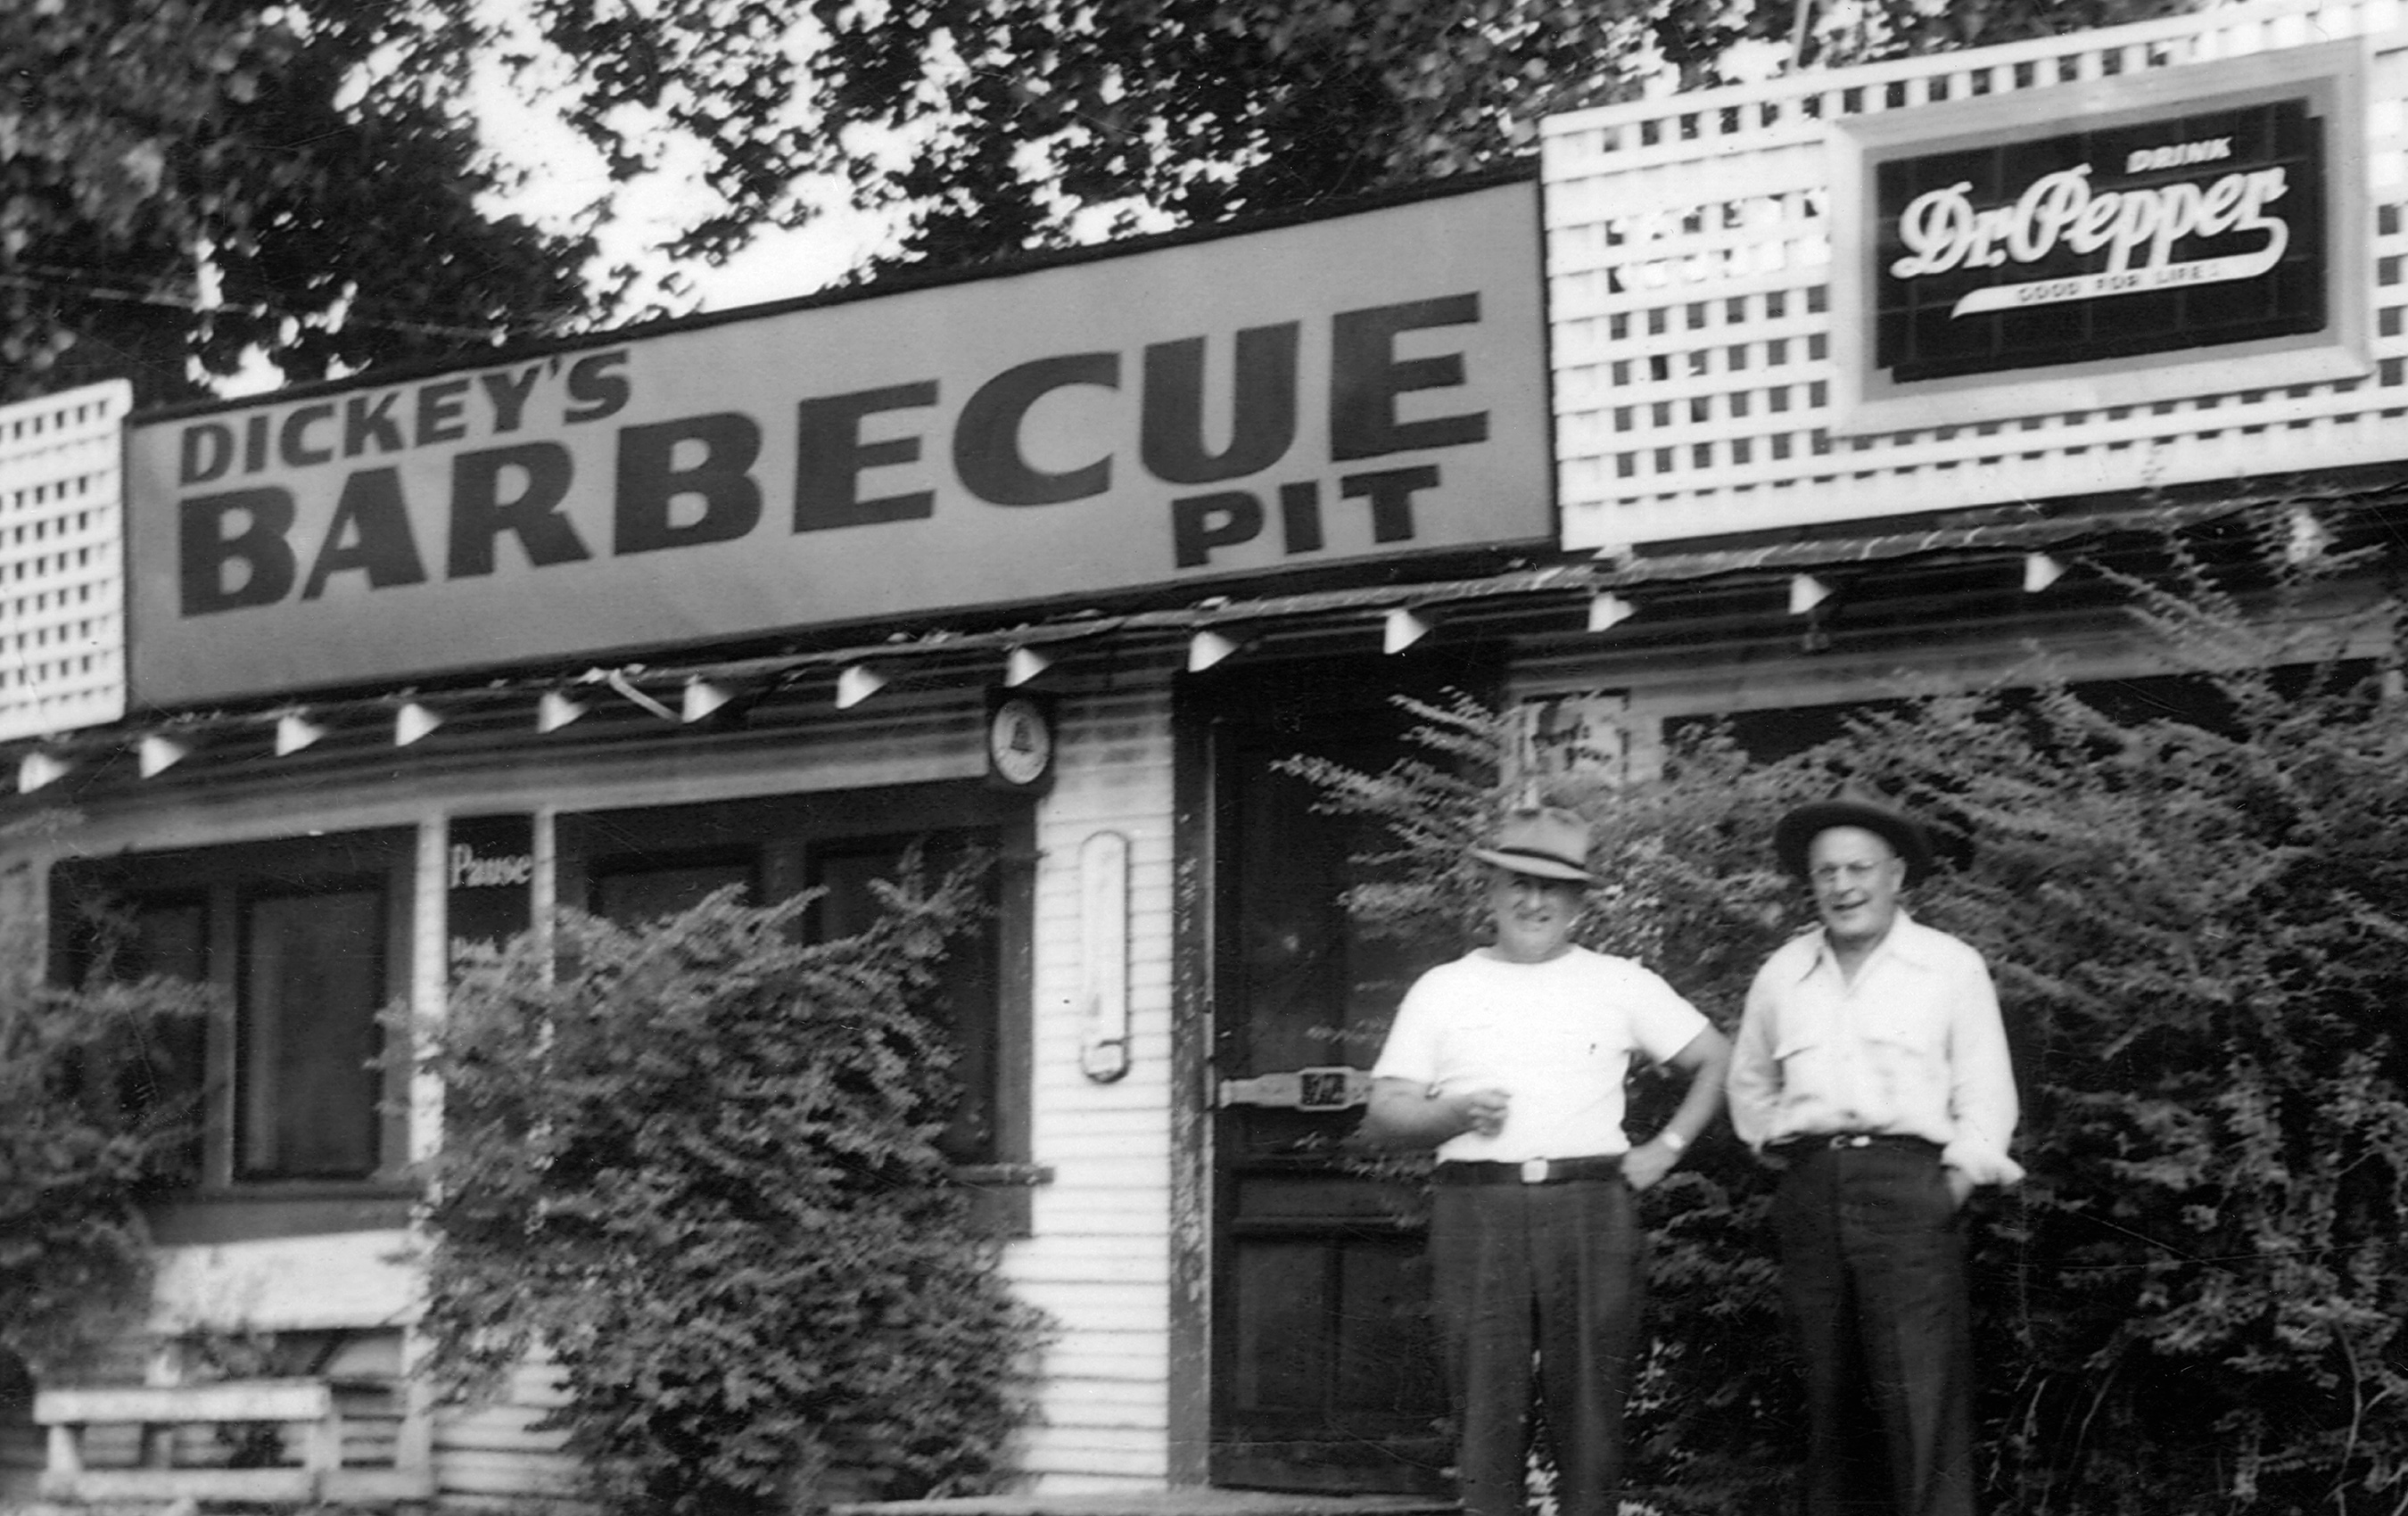 For 77 years, Dickey's Barbecue Pit has been known for authentic, Texas-style barbecue